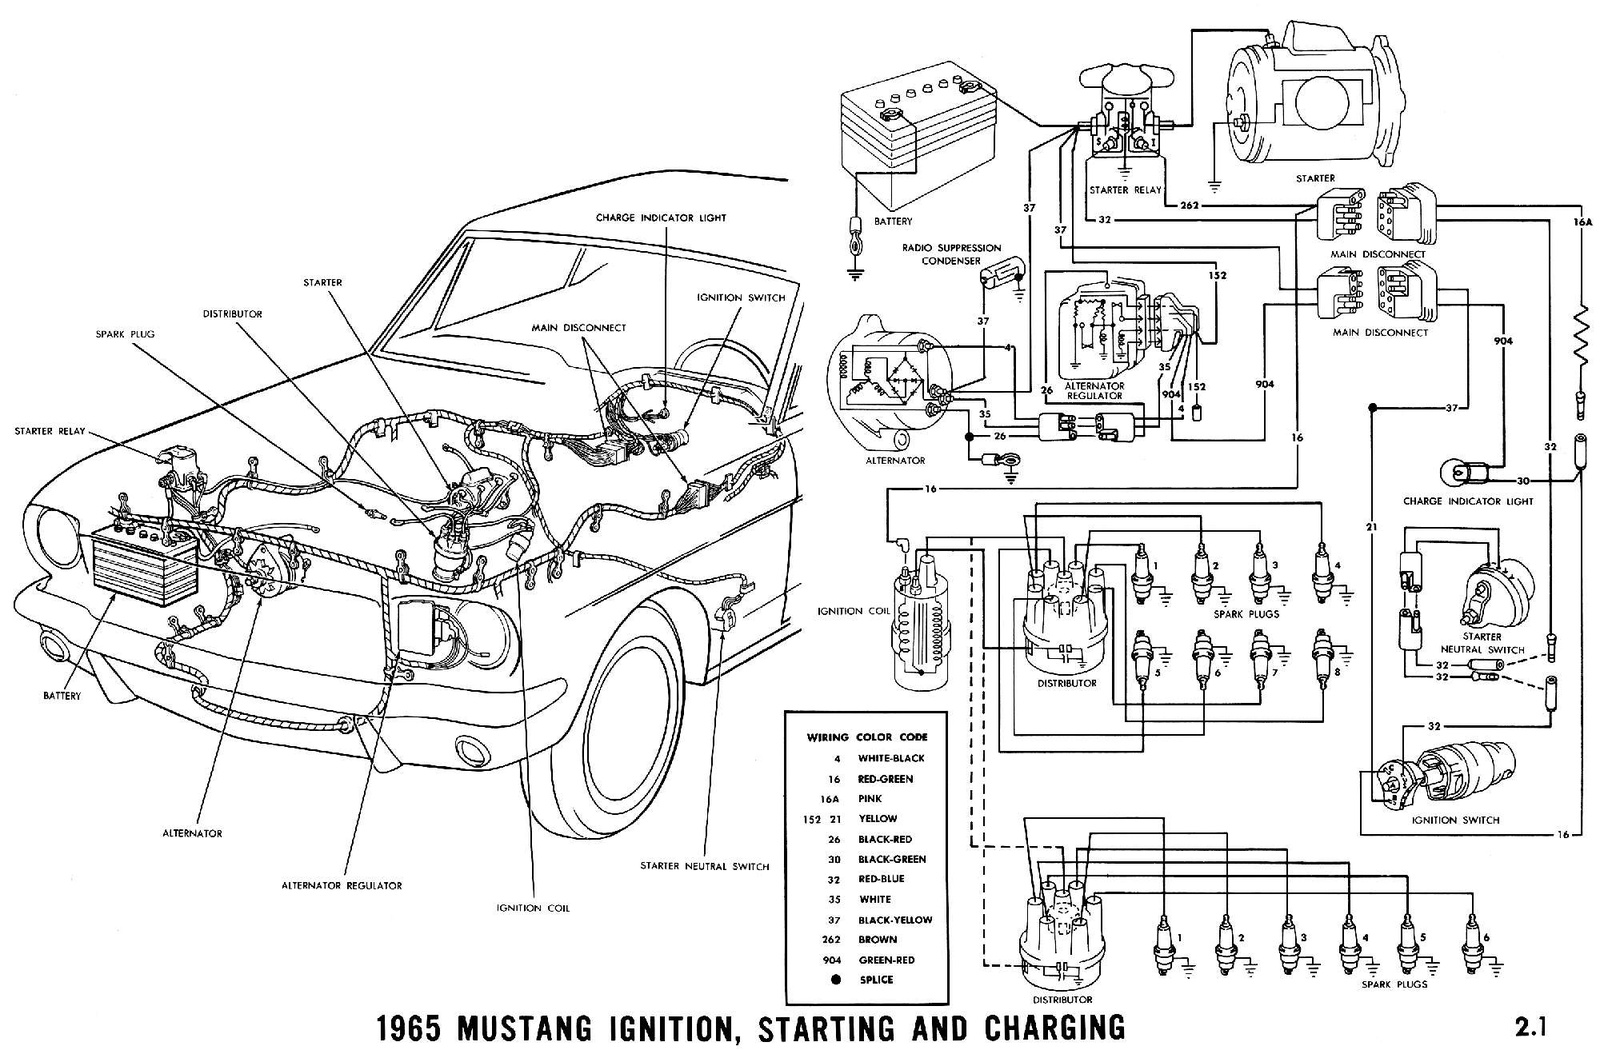 1968 Mustang Alternator Wiring Diagram from static.cargurus.com